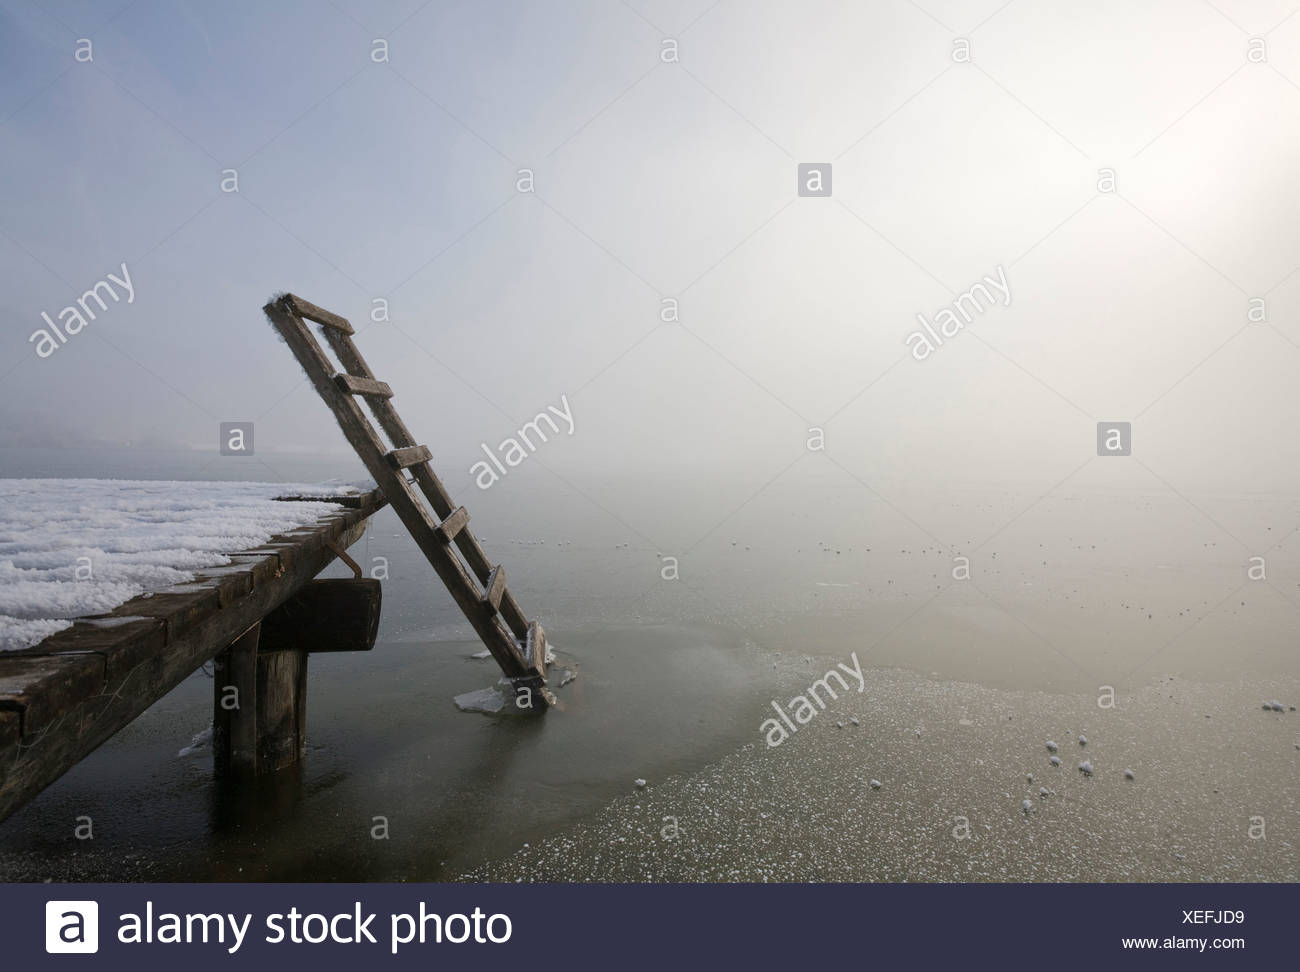 Germany, Bavaria, Murnau, Wooden jetty on lake - Stock Image